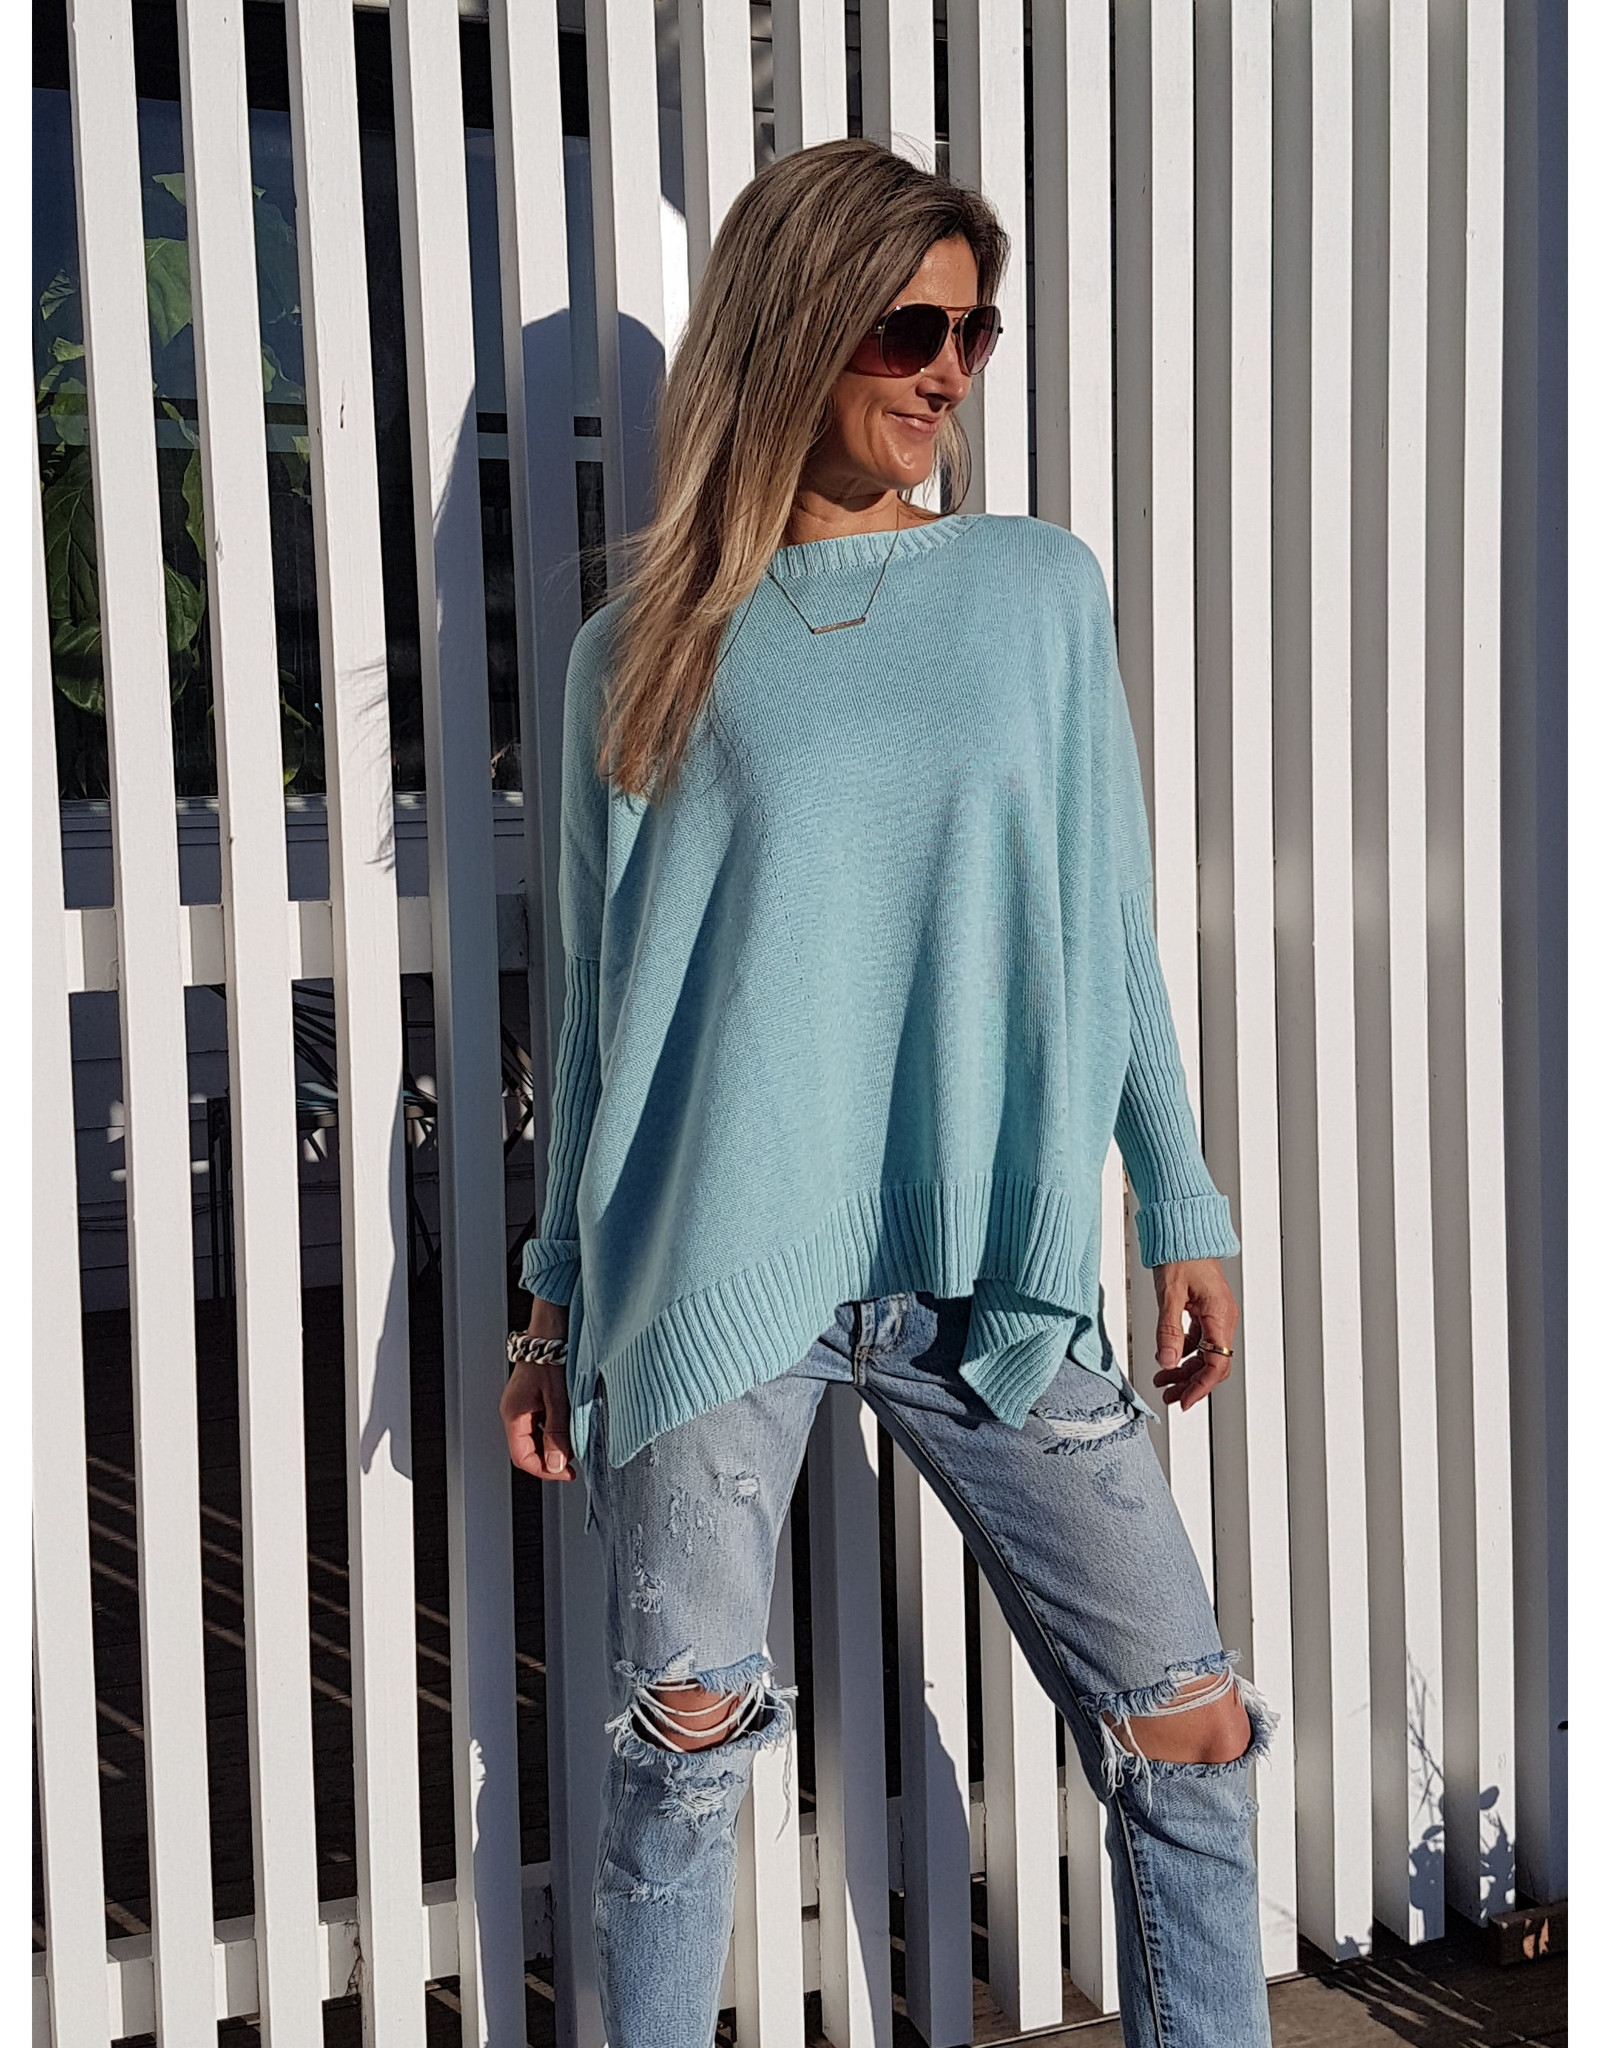 THE KNIT STUDIO SPLIT CREW NECK COTTON MINT